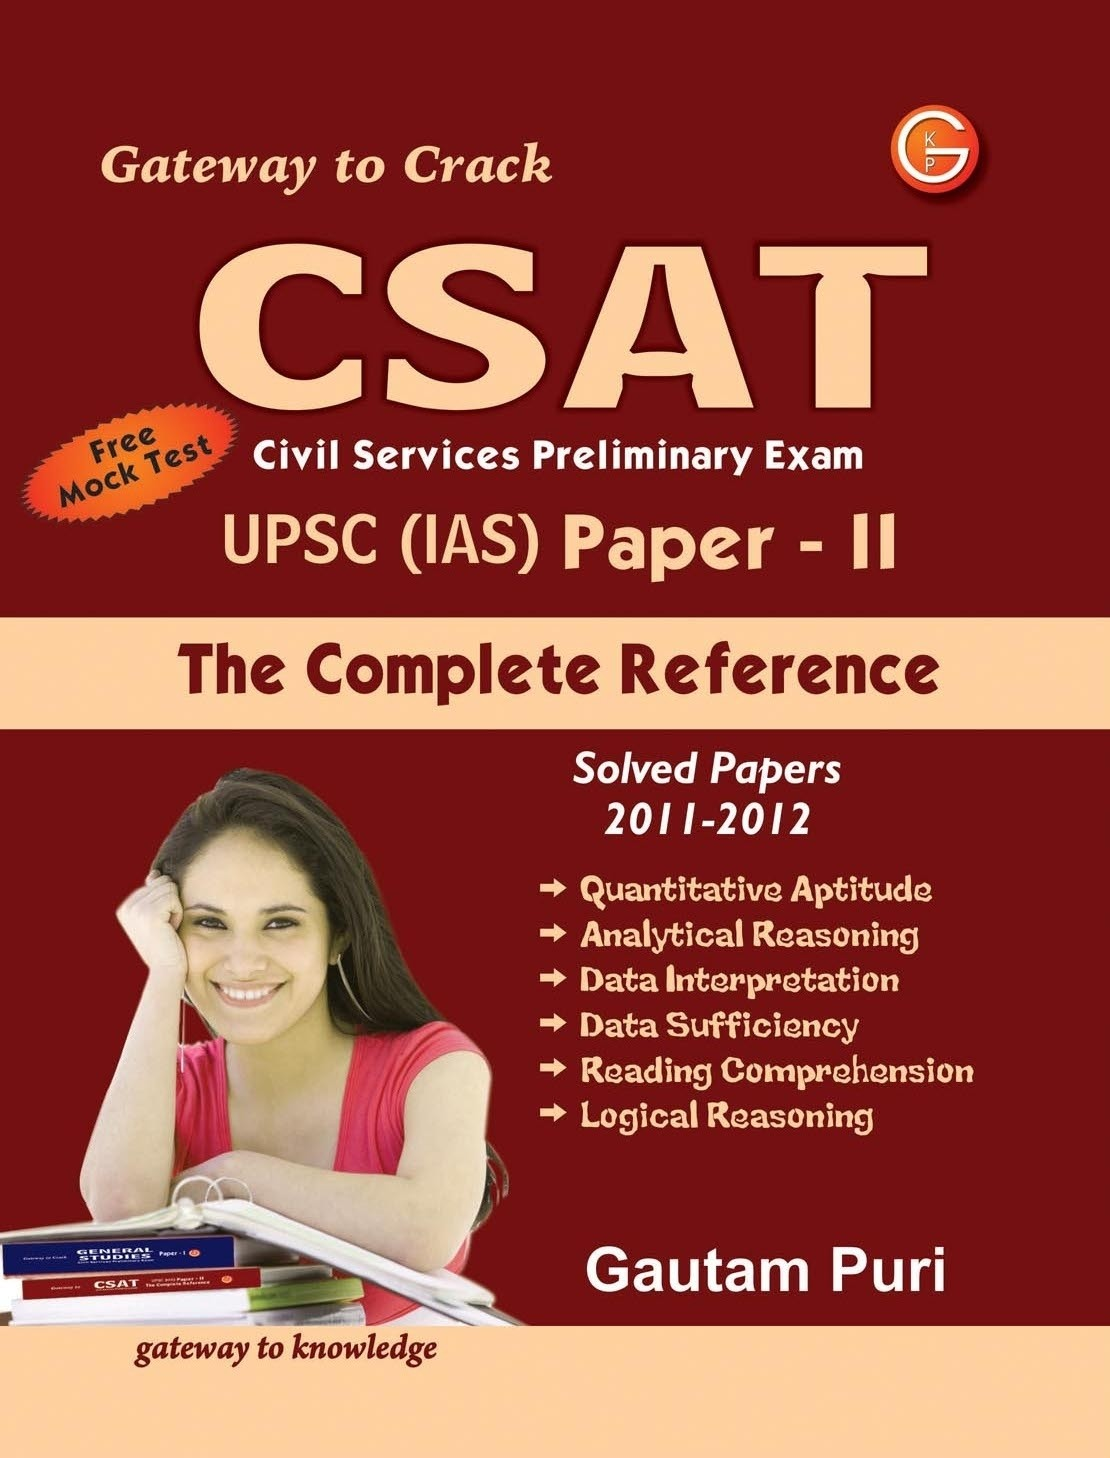 Upsc civil services exam english essay paper dropped